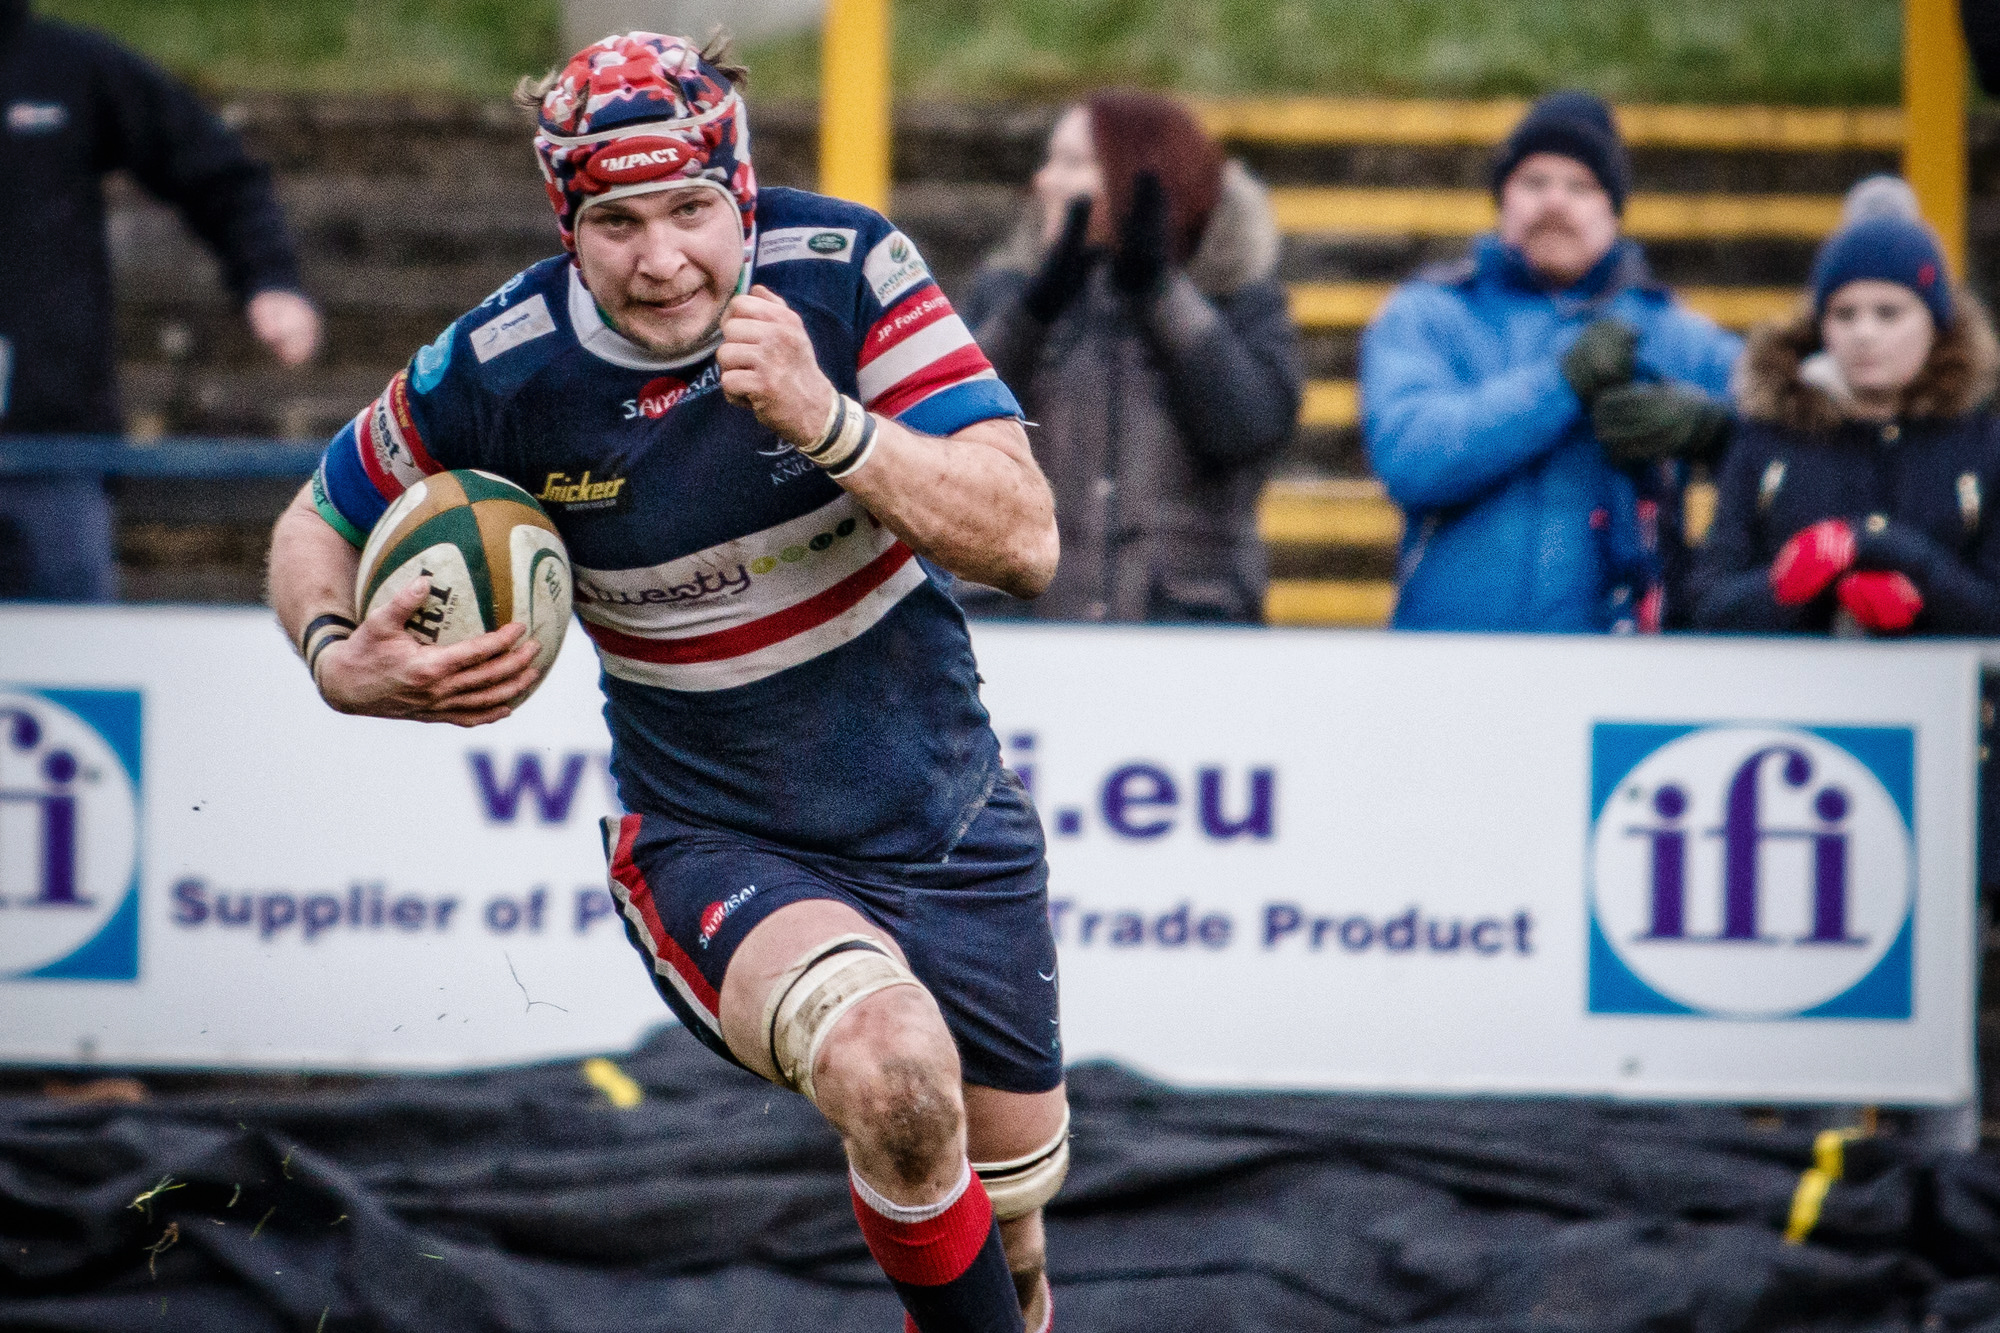 Michael Hills: Winning try in the dying seconds